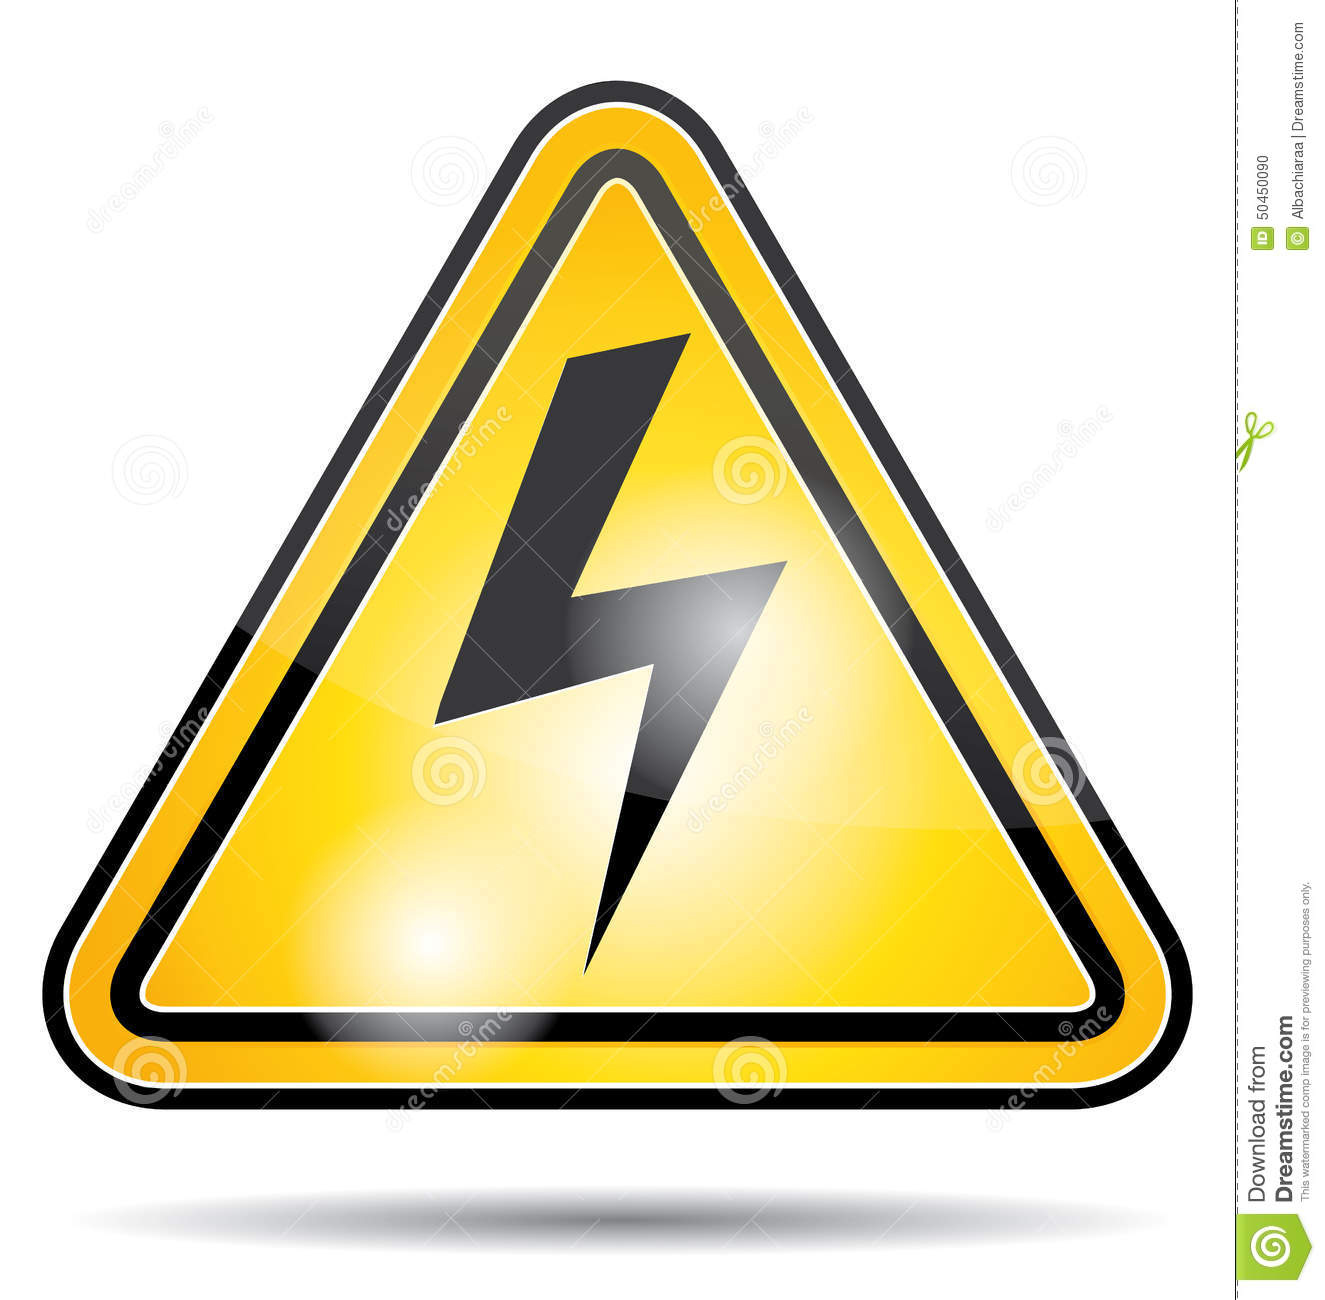 Electrical Power Danger Icon  Stock Vector - Illustration of